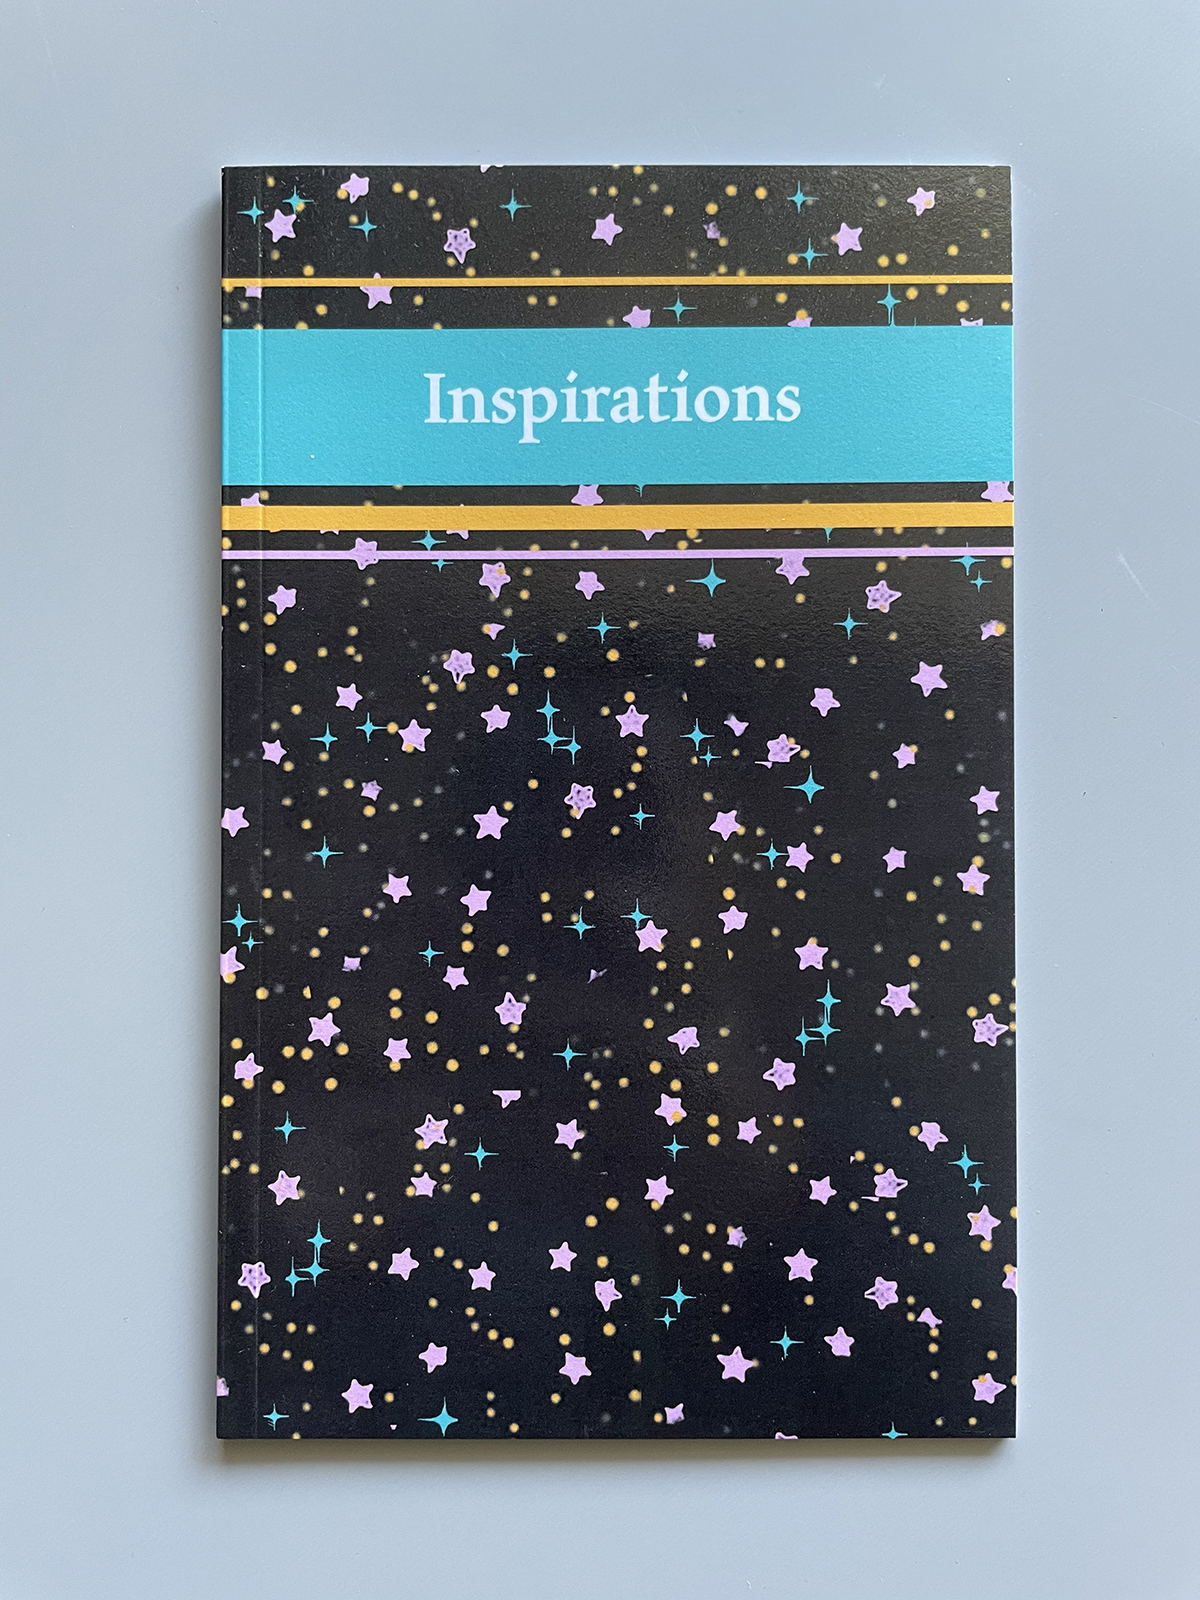 Front cover of the Inspirations zine.